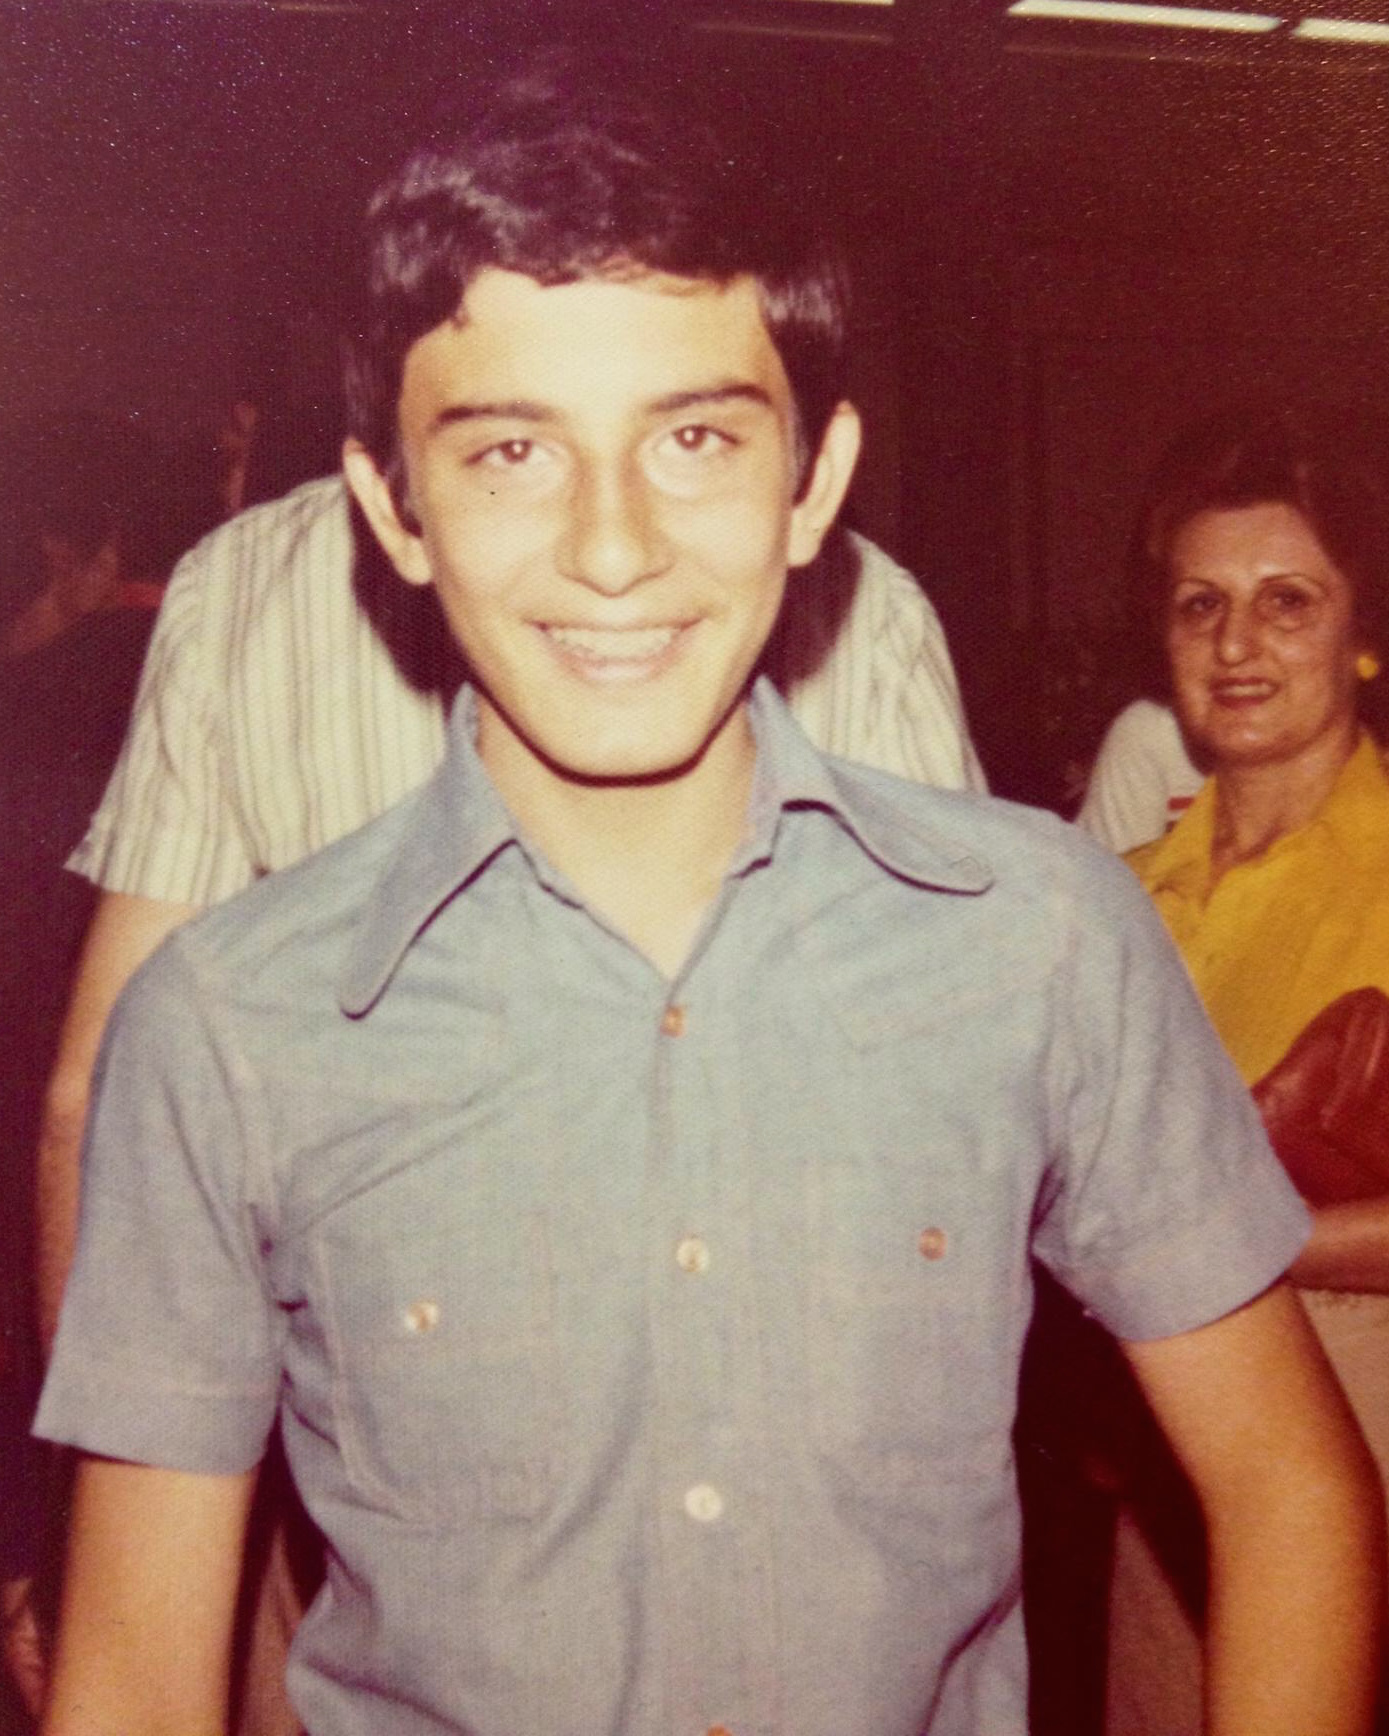 Me, moments before I boarded the plane to the US in Tehran in 1978. I can't imagine what my mom (in the background)was thinking/feeling at that moment.